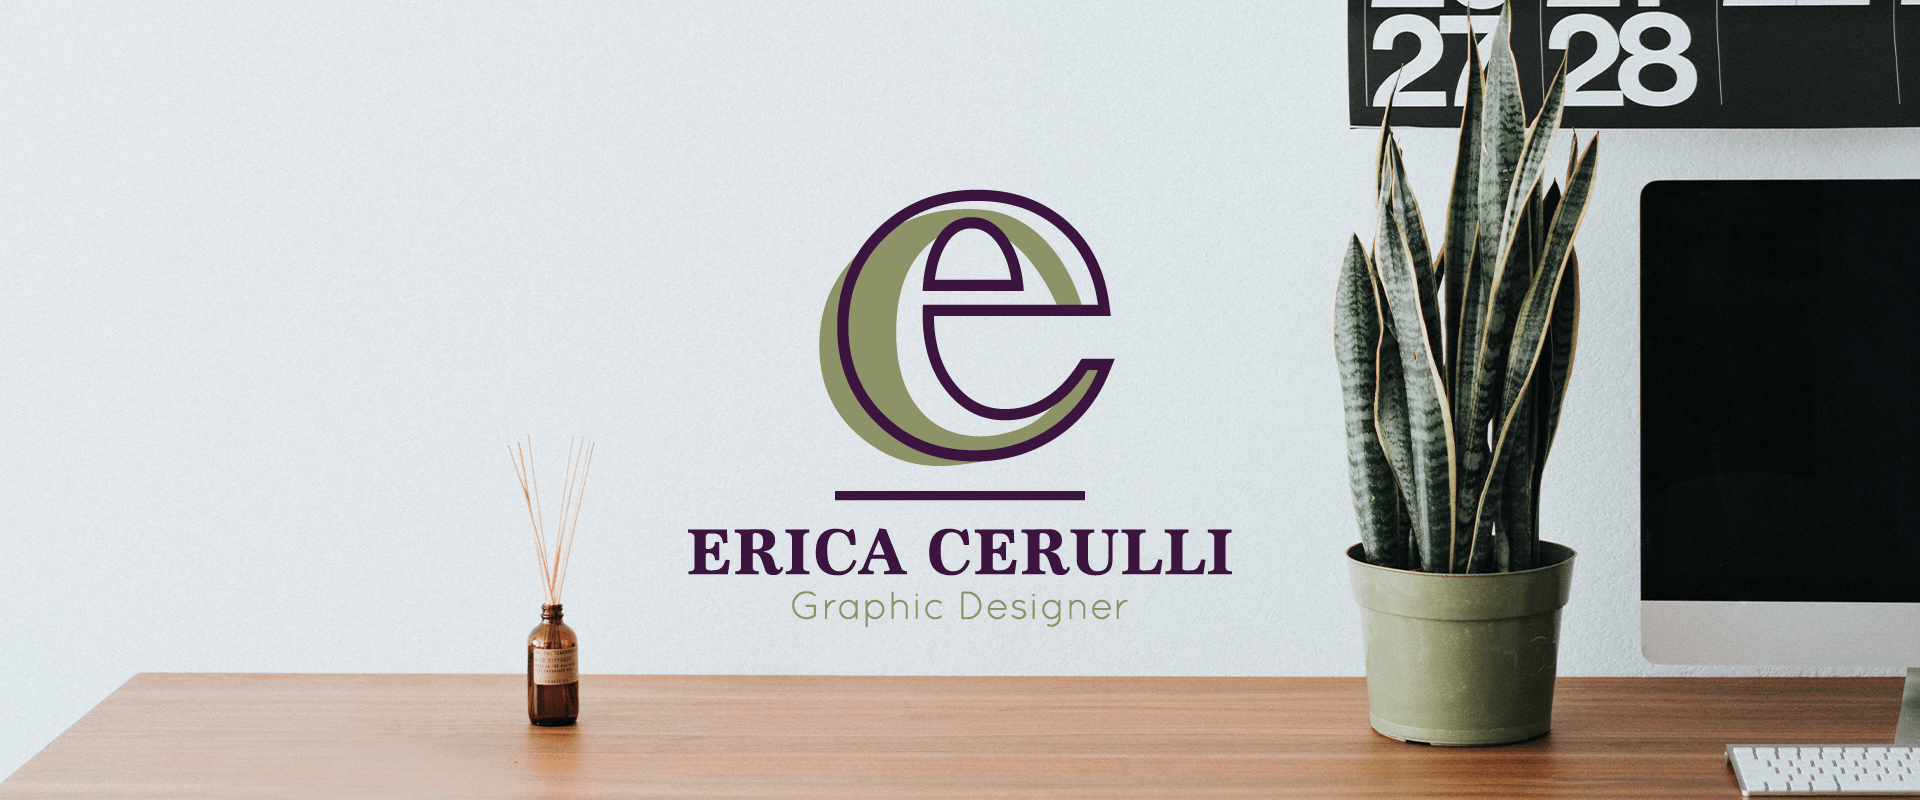 Erica Cerulli logo on an image of a desk and computer